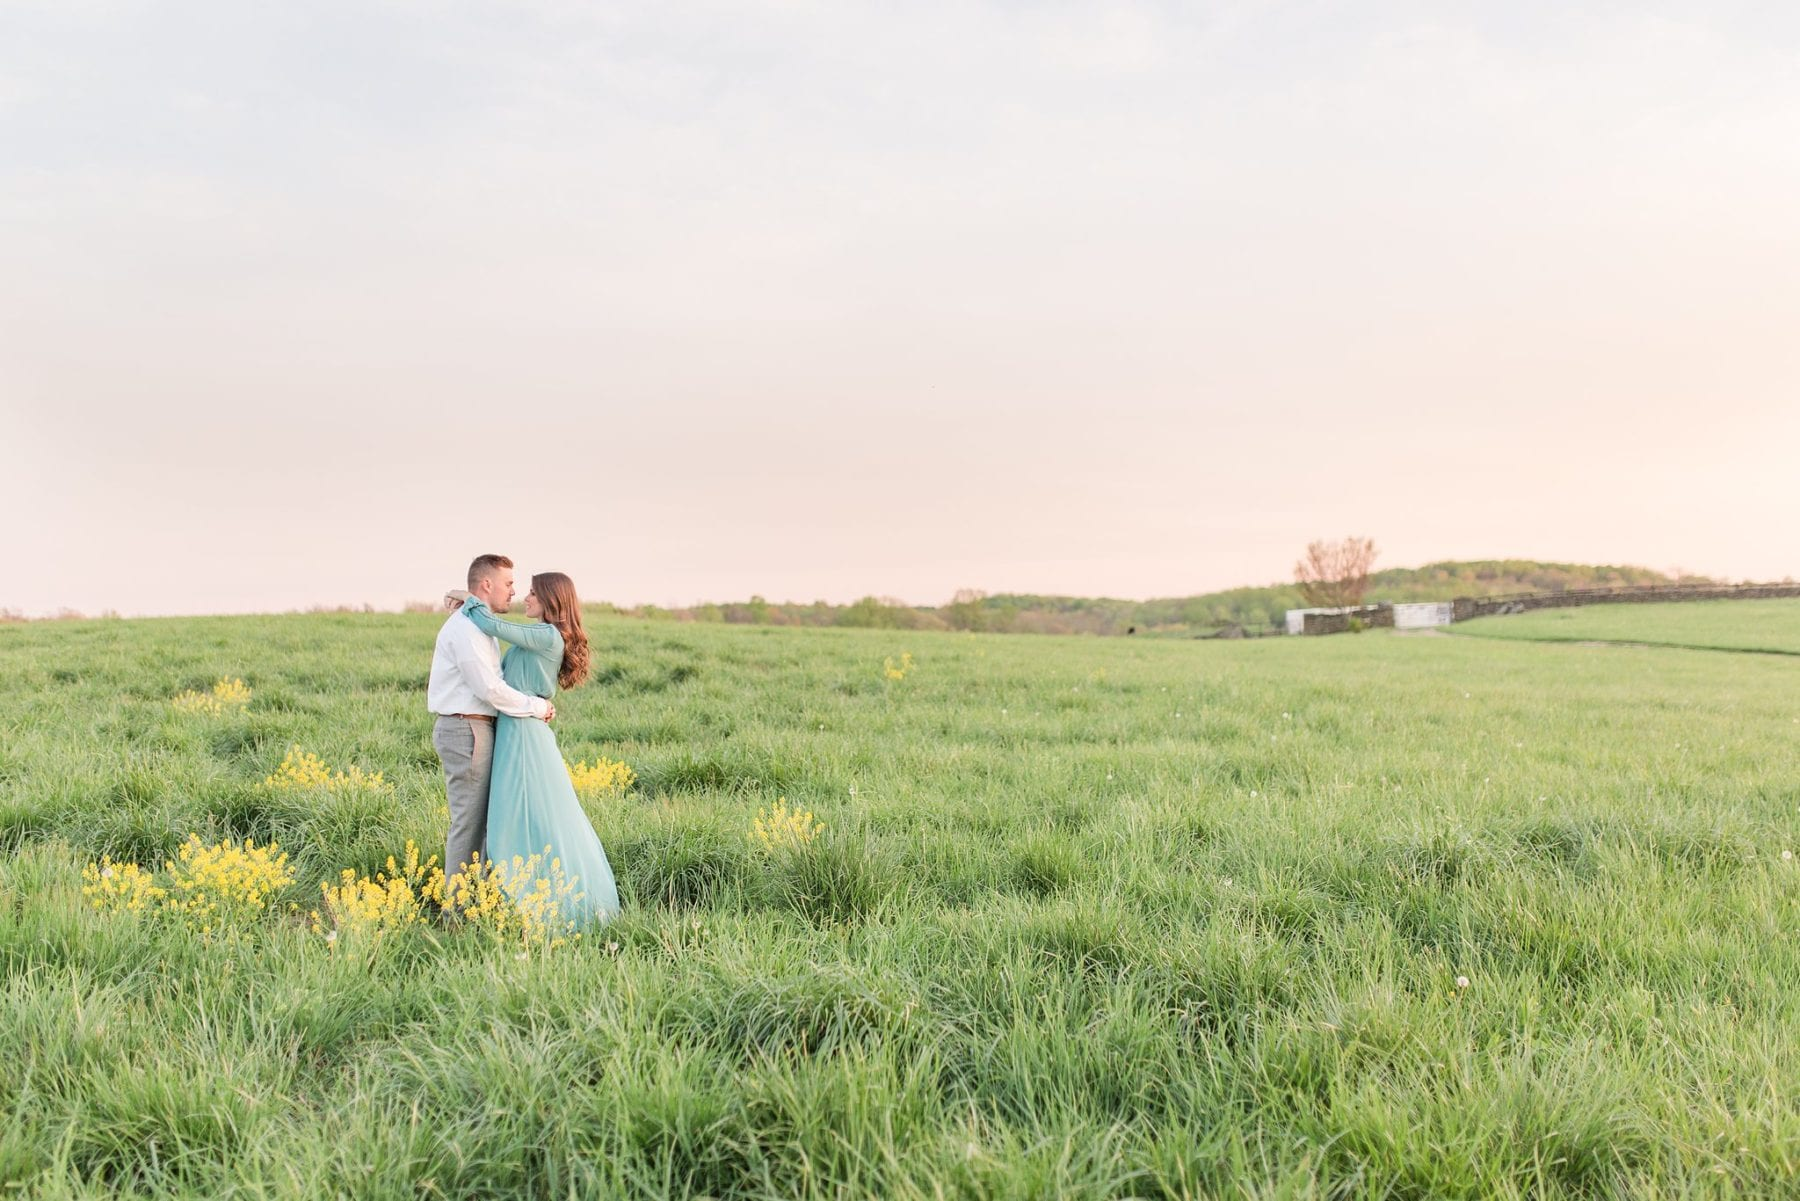 Goodstone Inn Engagement Session Virginia Wedding Photographer Megan Kelsey Photography-333.jpg